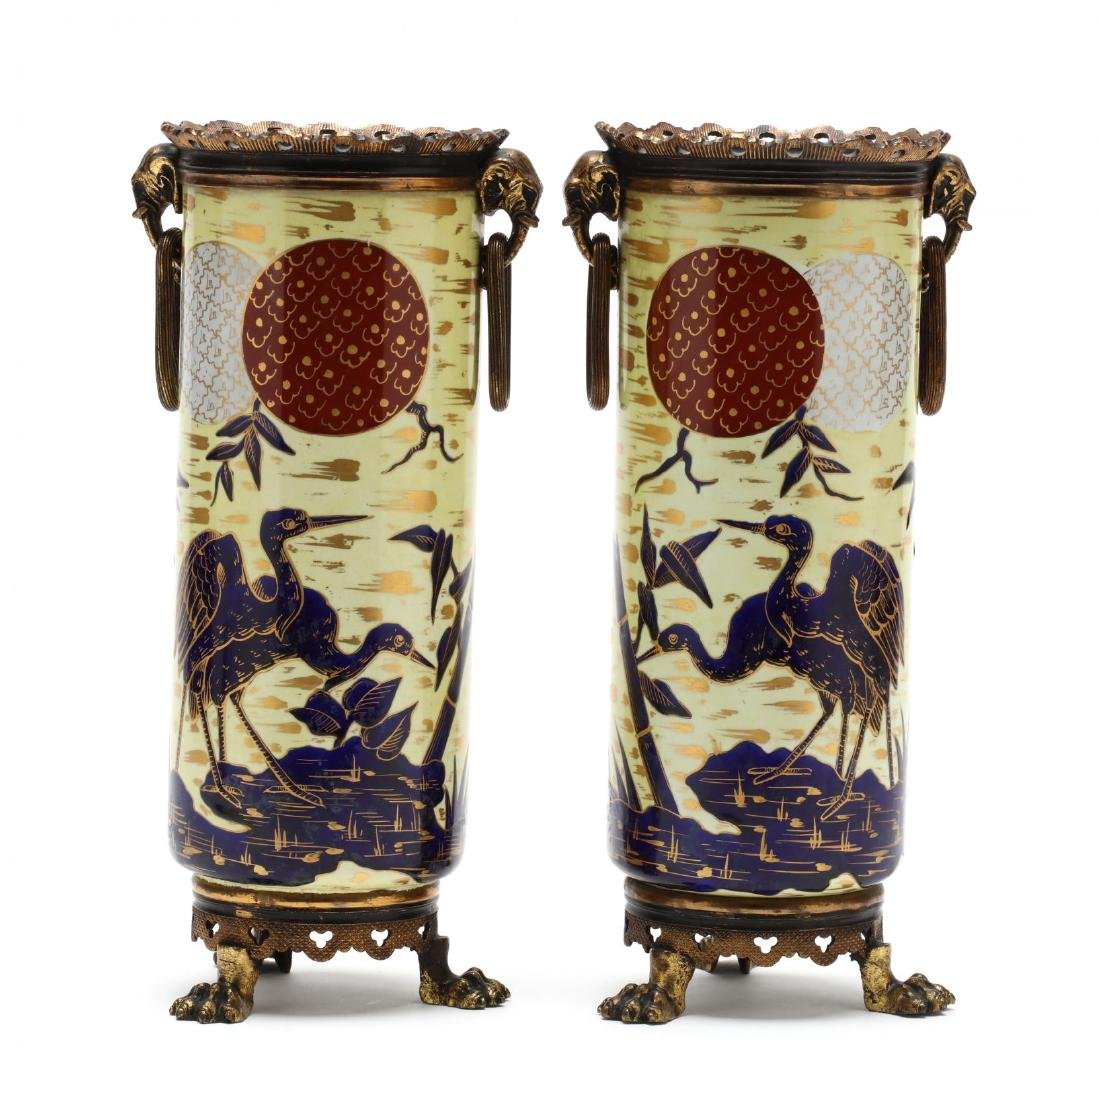 Choisy Le Roi, Pair of Aesthetic Period Ormolu Mounted